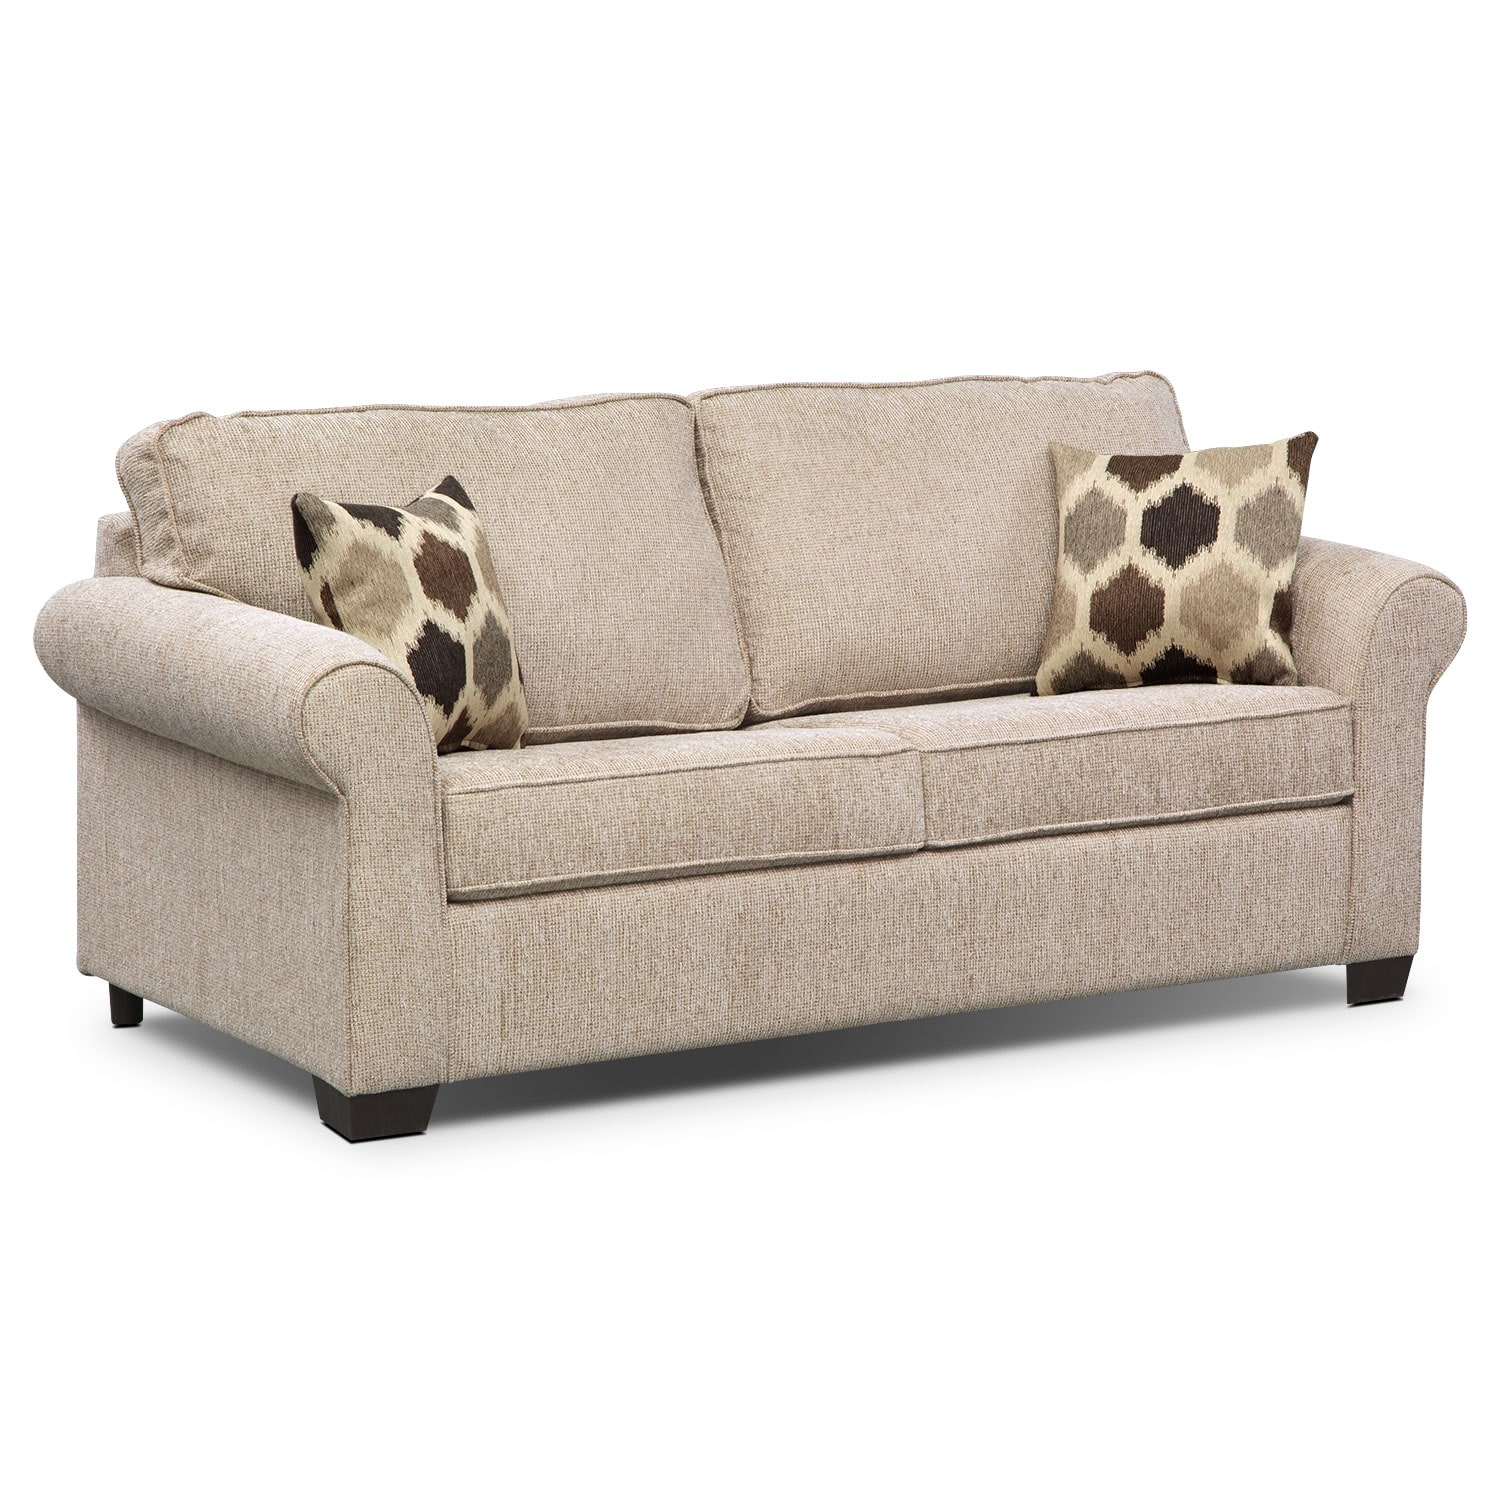 Fletcher Full Innerspring Sleeper Sofa Value City Furniture